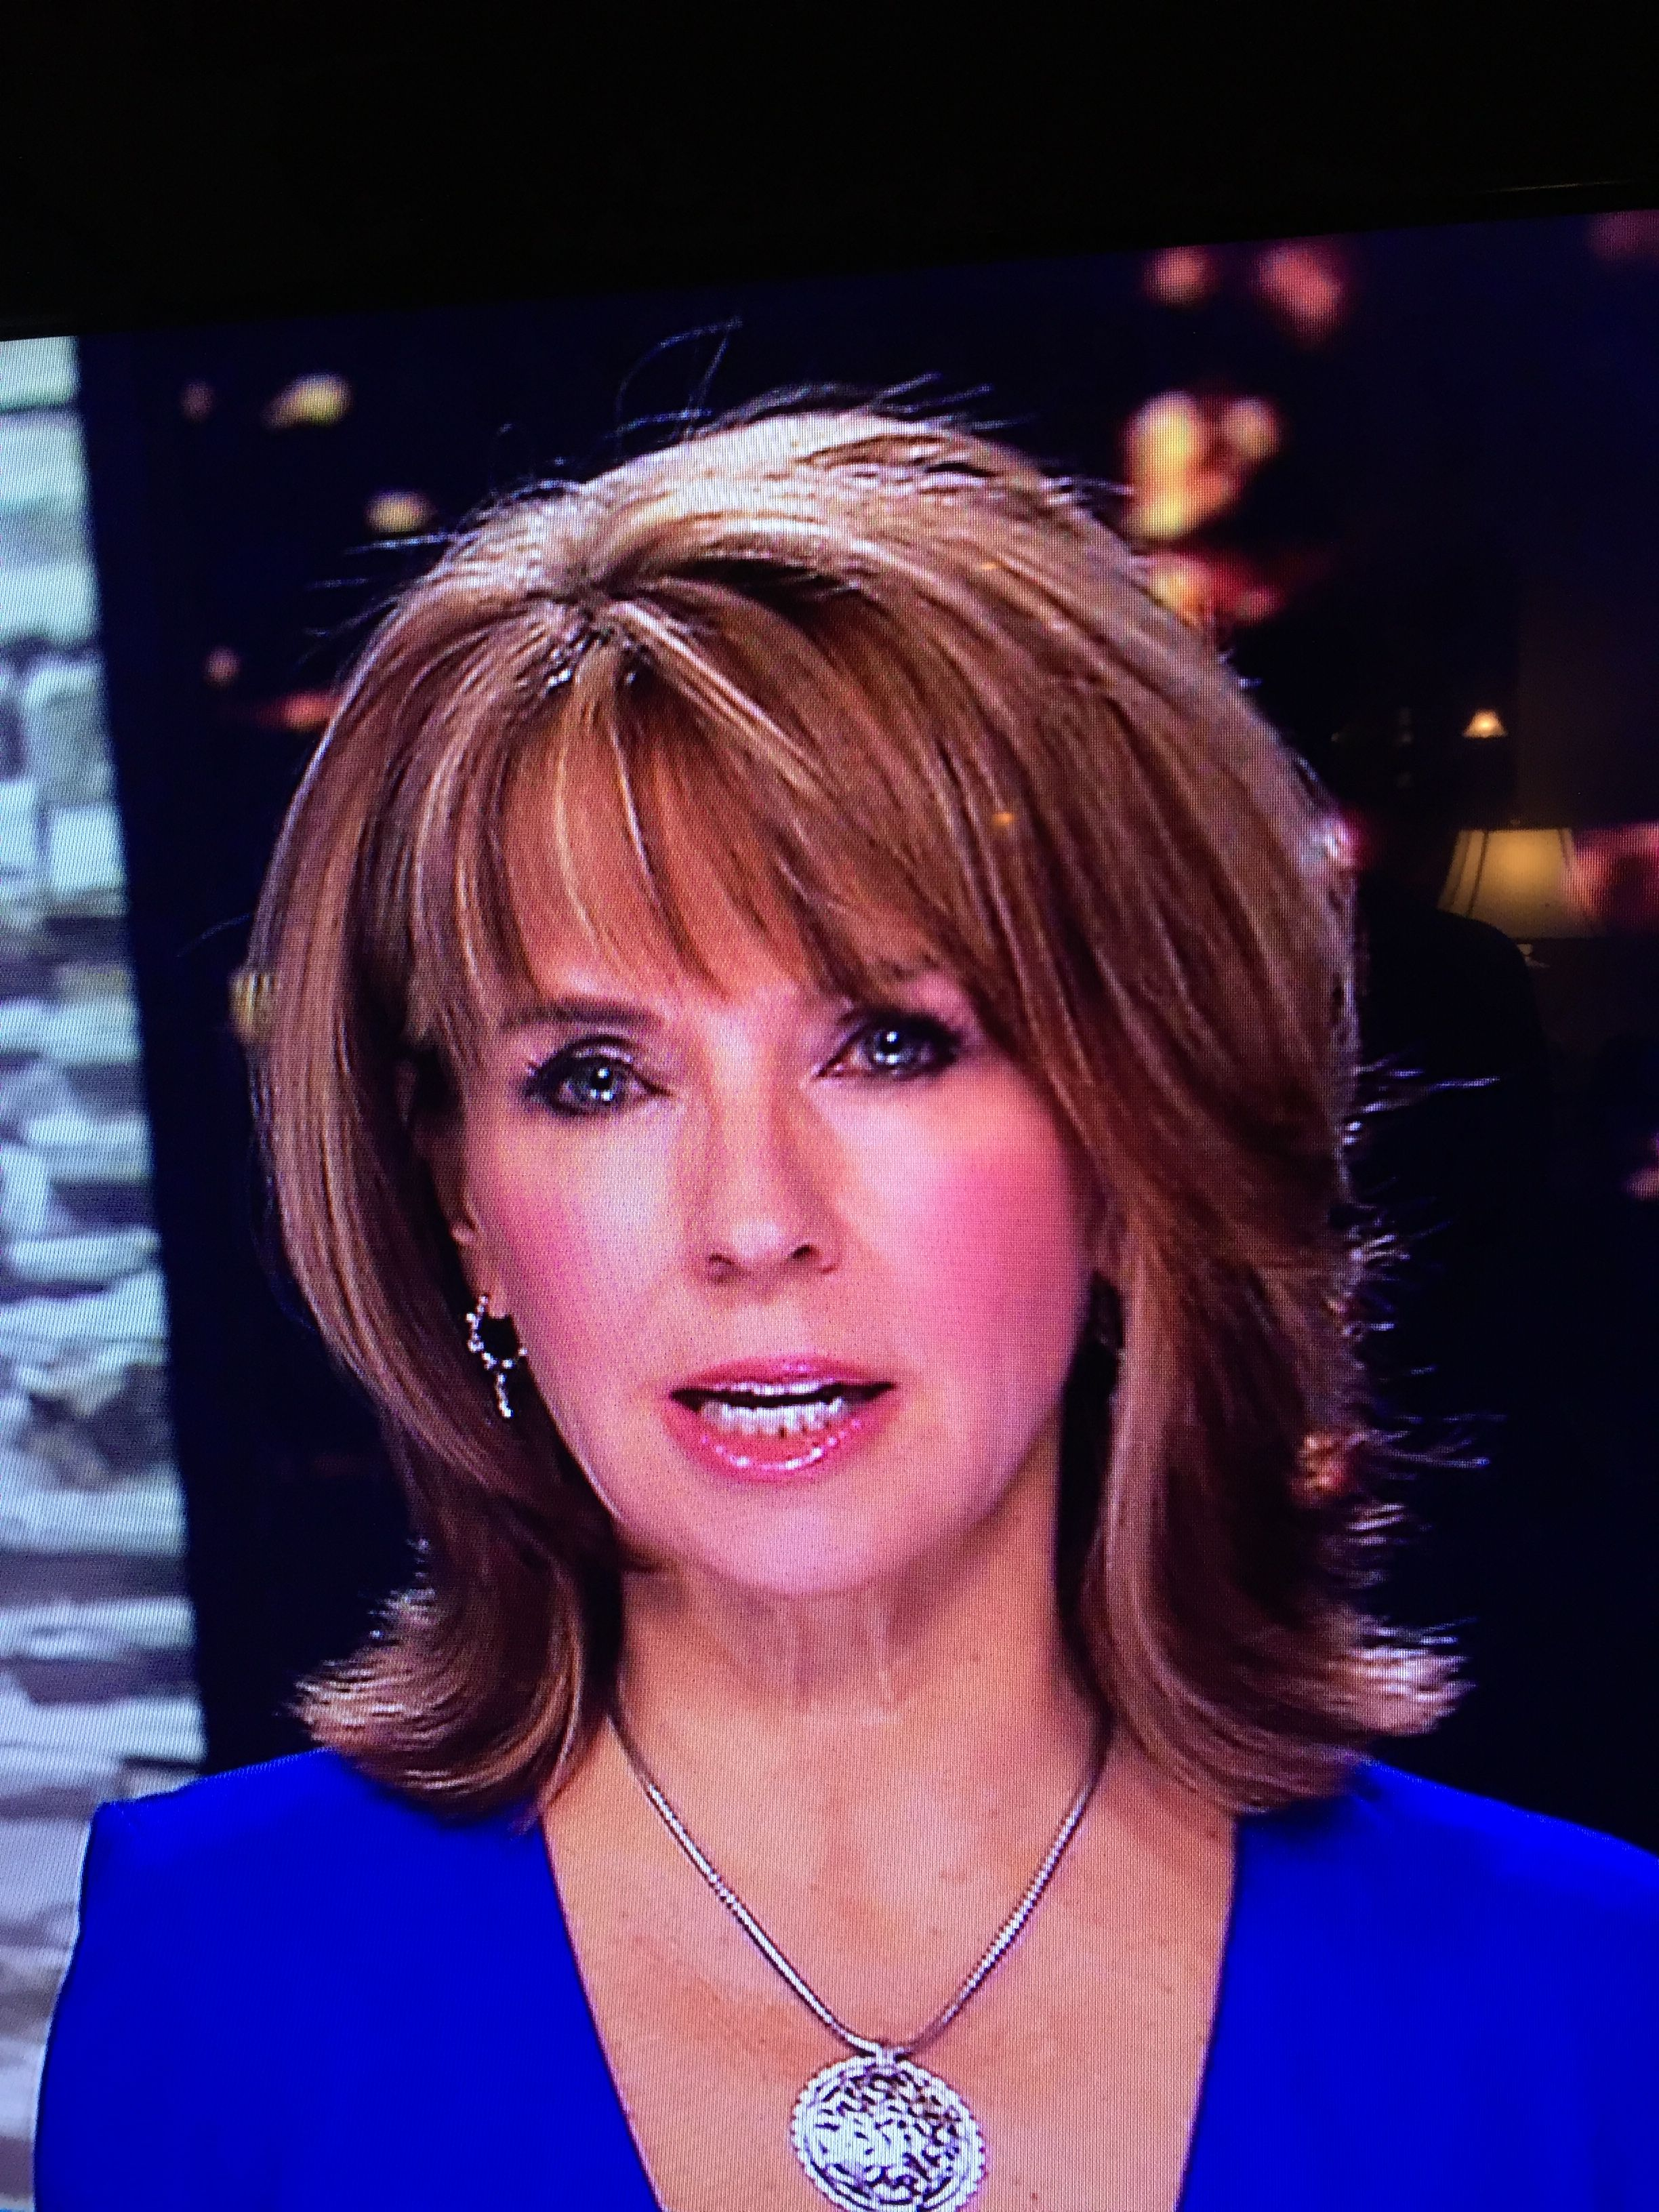 modern flip hairdo on news anchor, kim christiansen, for